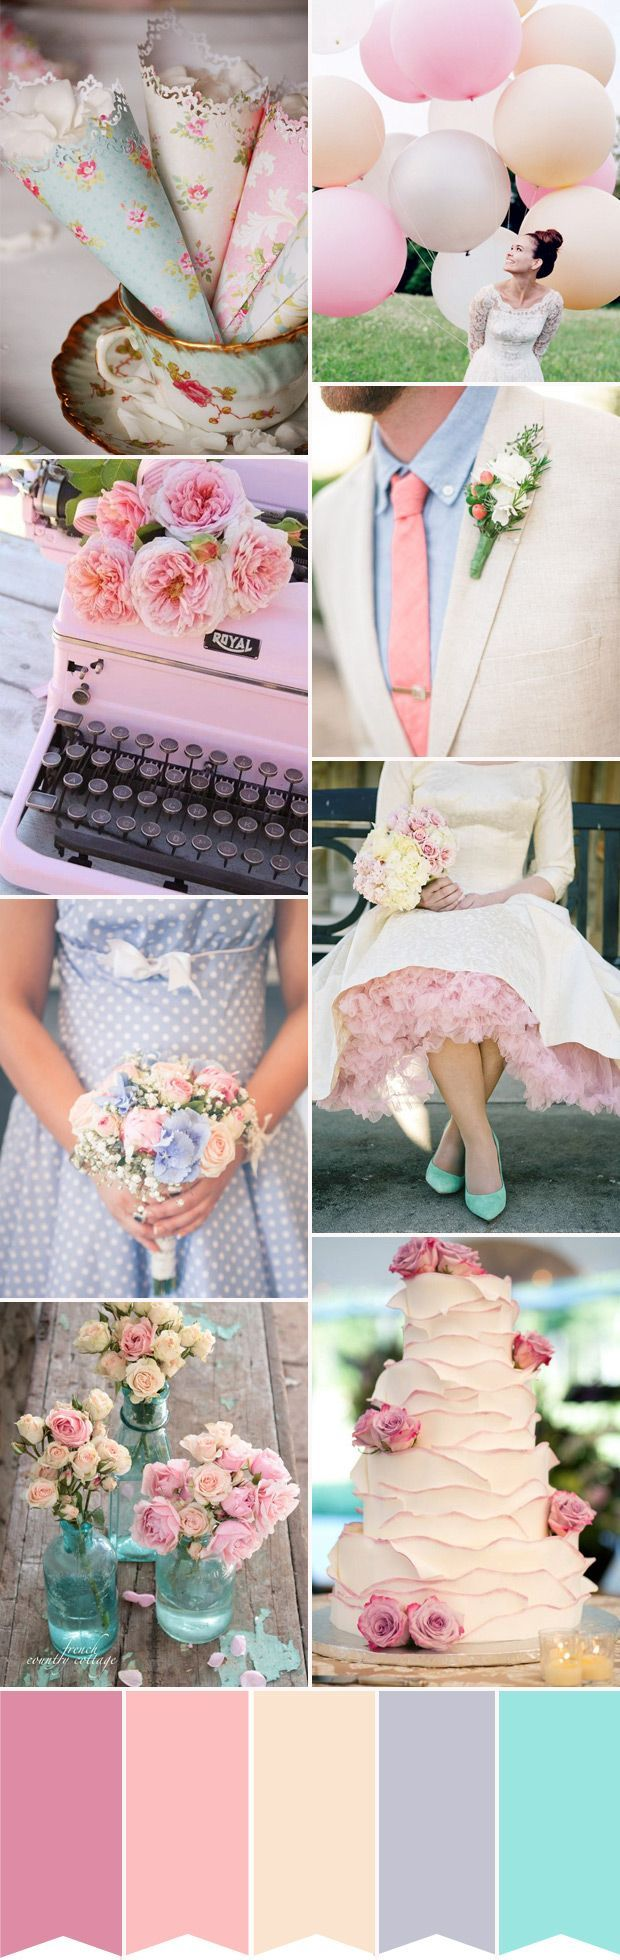 Pretty Pastel Pink and Blue Colour Inspiration for weddings | www.onefabday.com